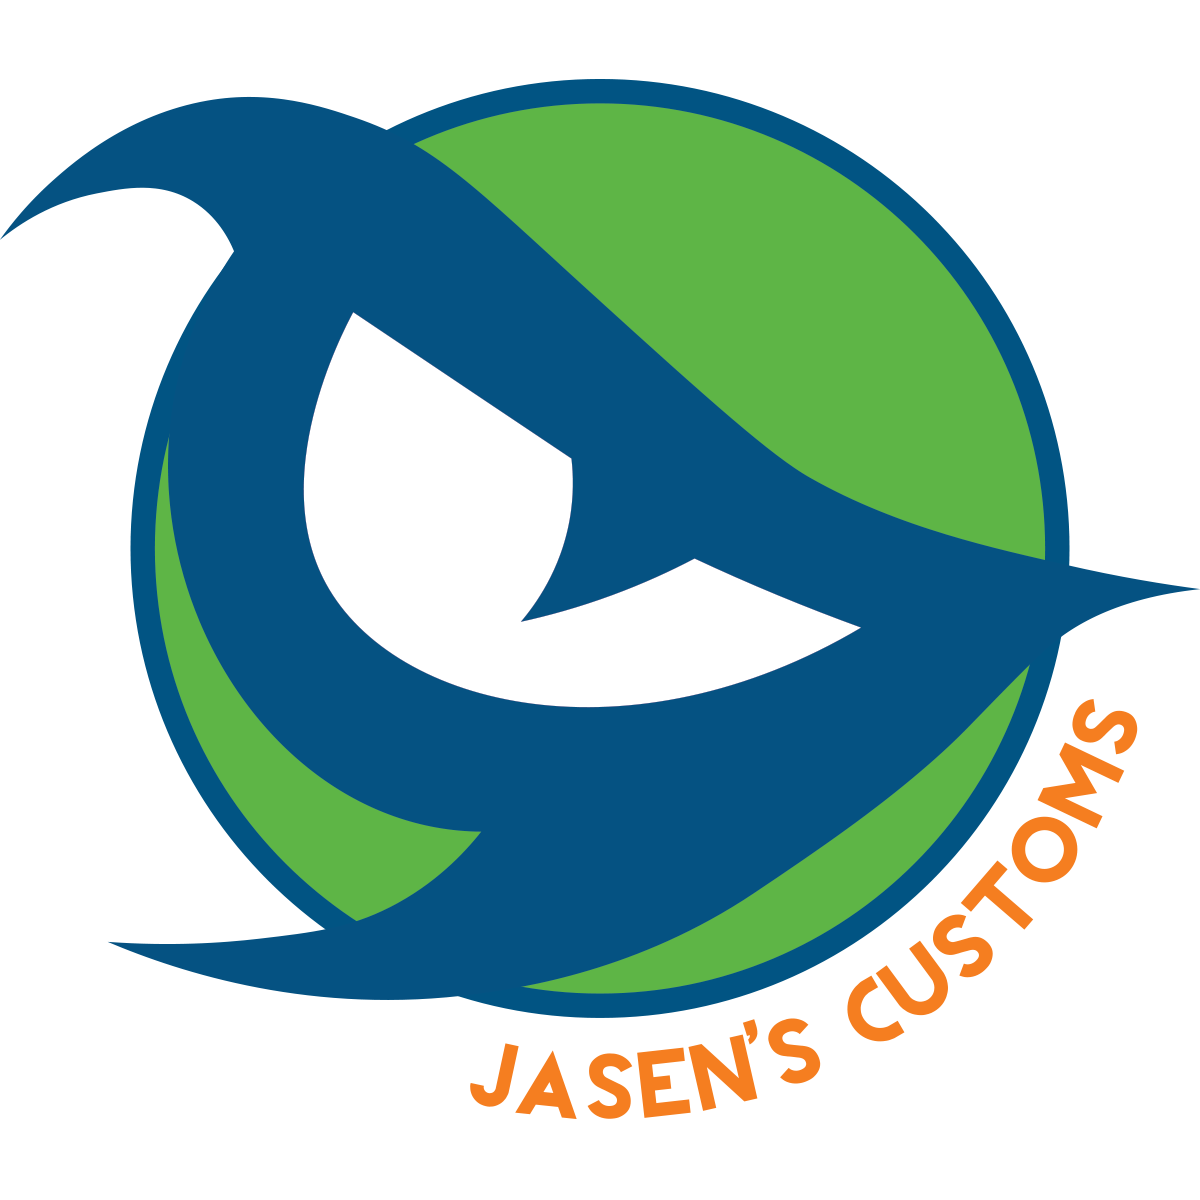 Jasen's Customs Help Center home page